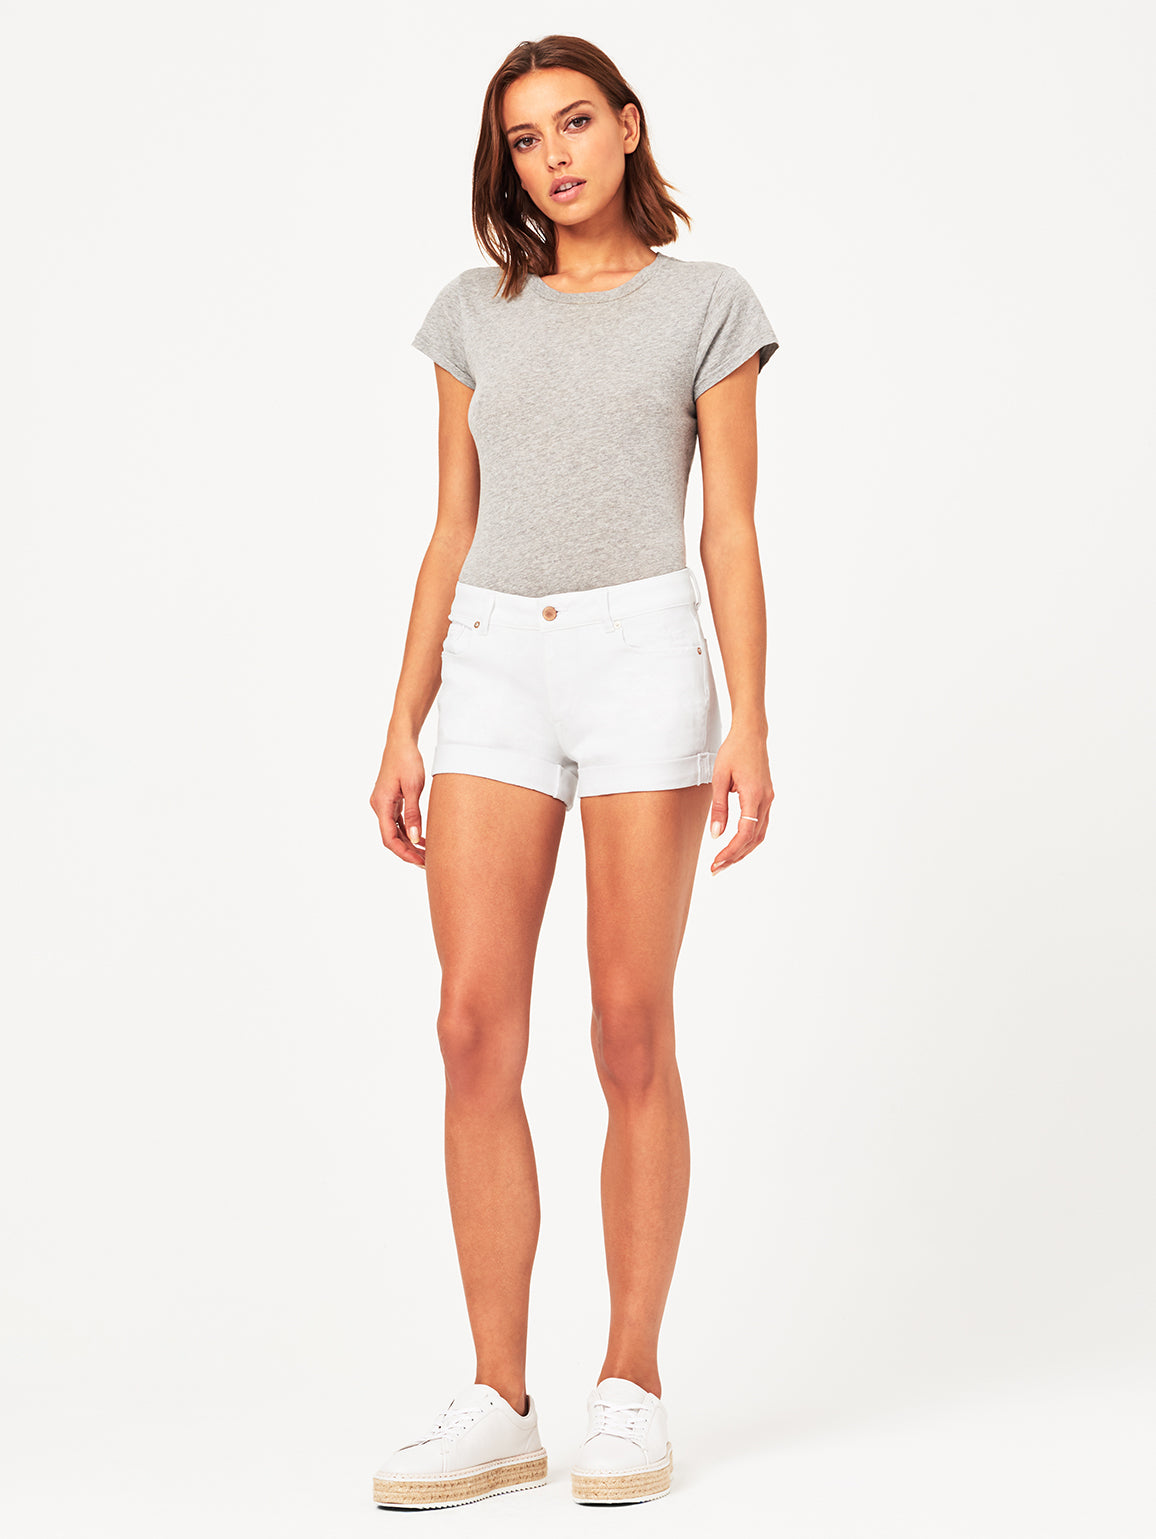 Renee Low Rise Short | Rockaway DL 1961 Denim